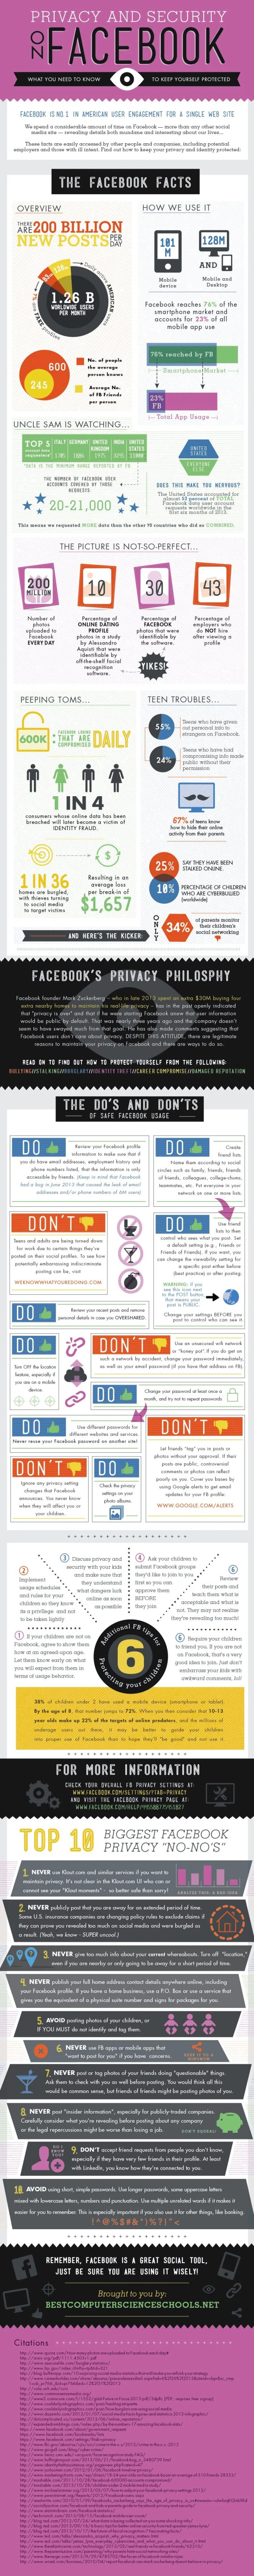 How to Protect You and Your Kids on Facebook [Infographic] - The ...